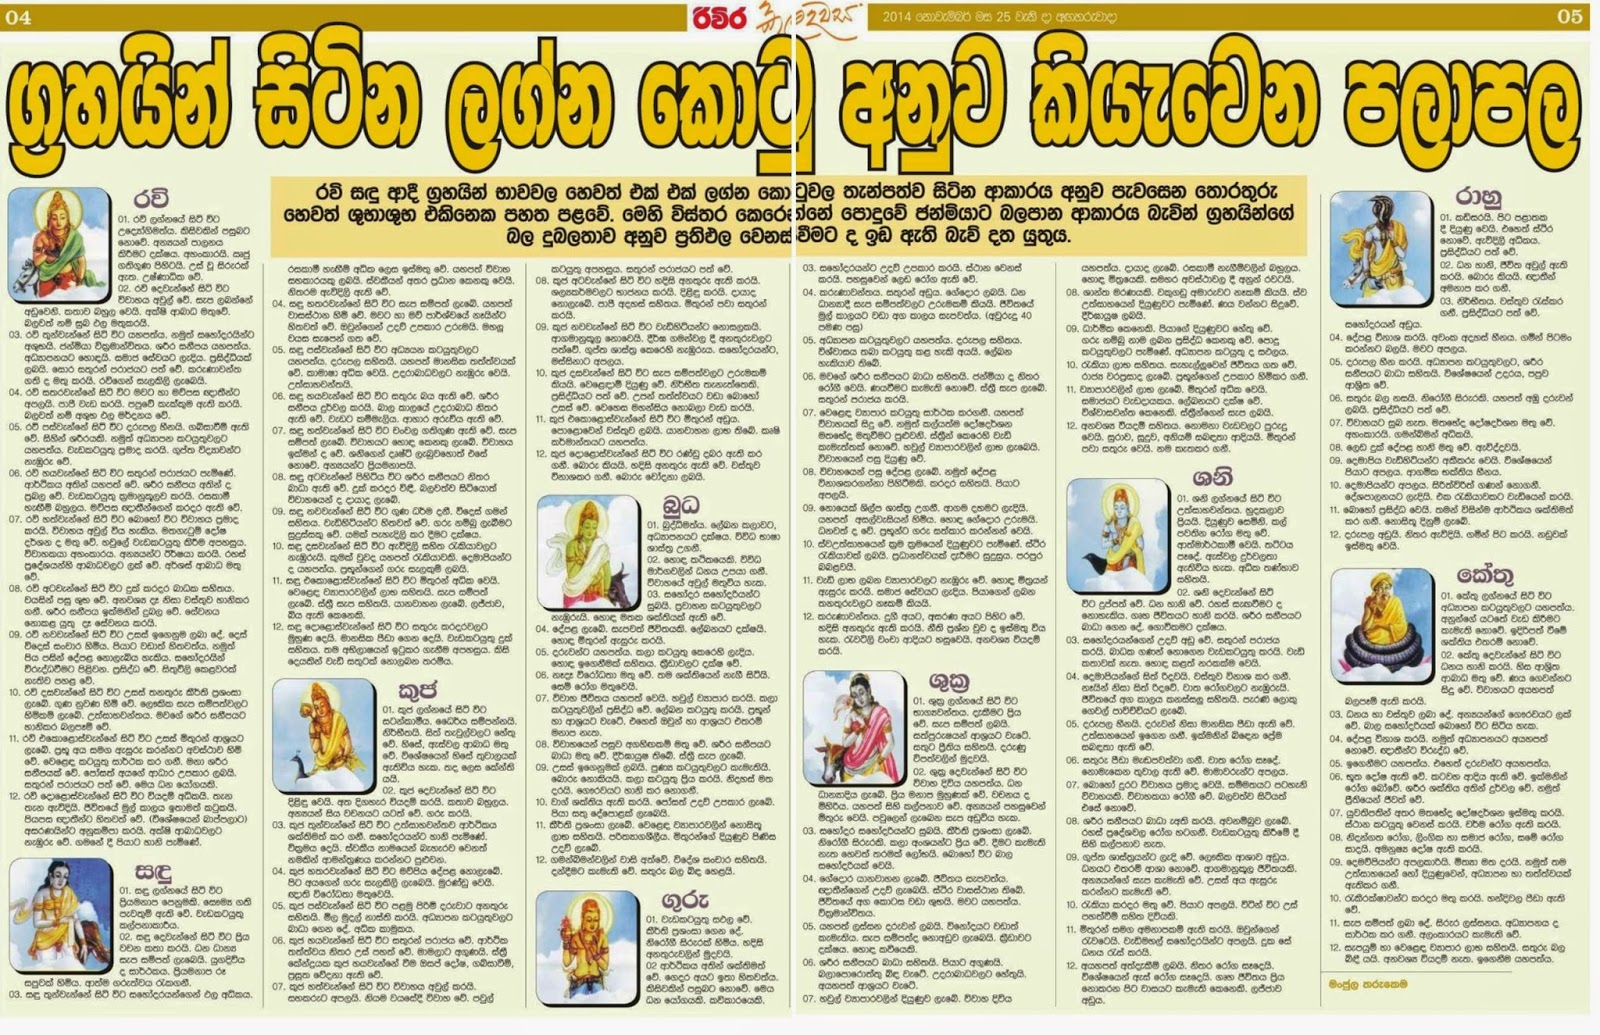 "ග්‍à¶à·""යන් අනුව පලාපල Astrology Grahas (Planets adbabdf  Astrology Grahas Planets"